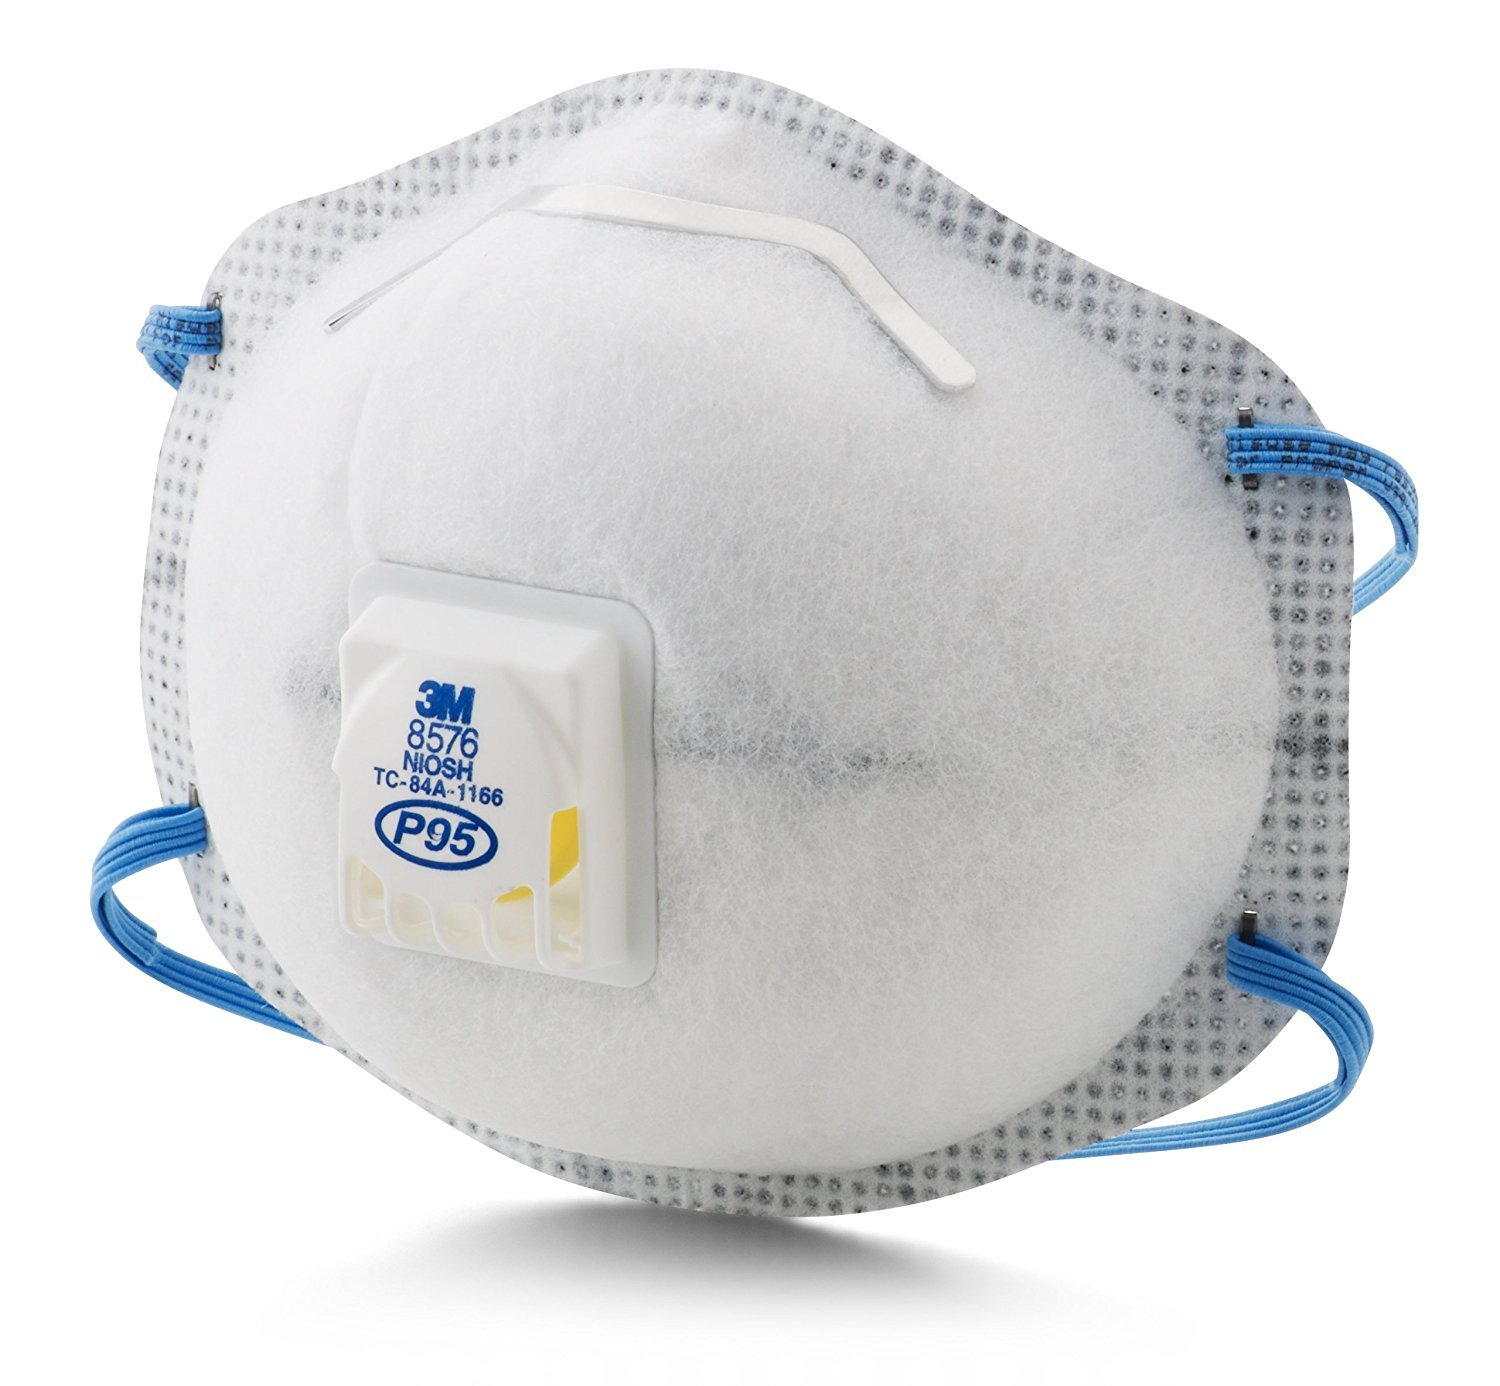 3M Particulate Respirator 8576, P95, with Nuisance Level Acid Gas Relief, 1 Case of 10, 10 per box, 100 Respirators